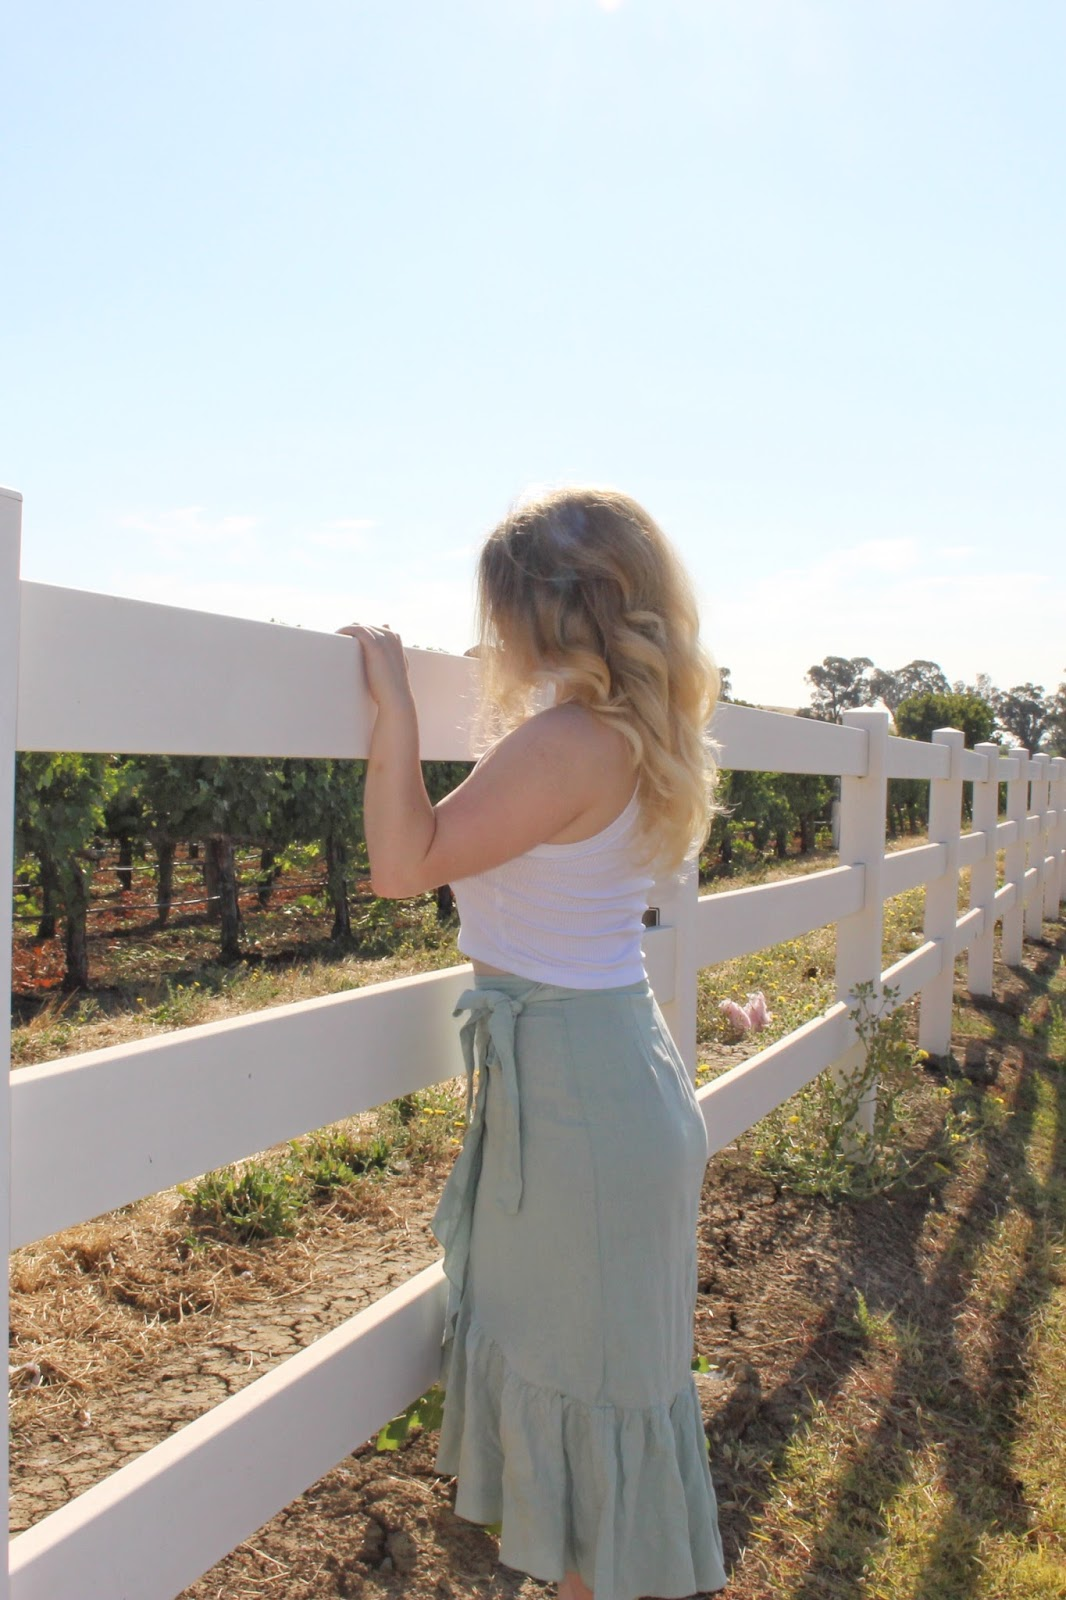 The Vineyard Girl